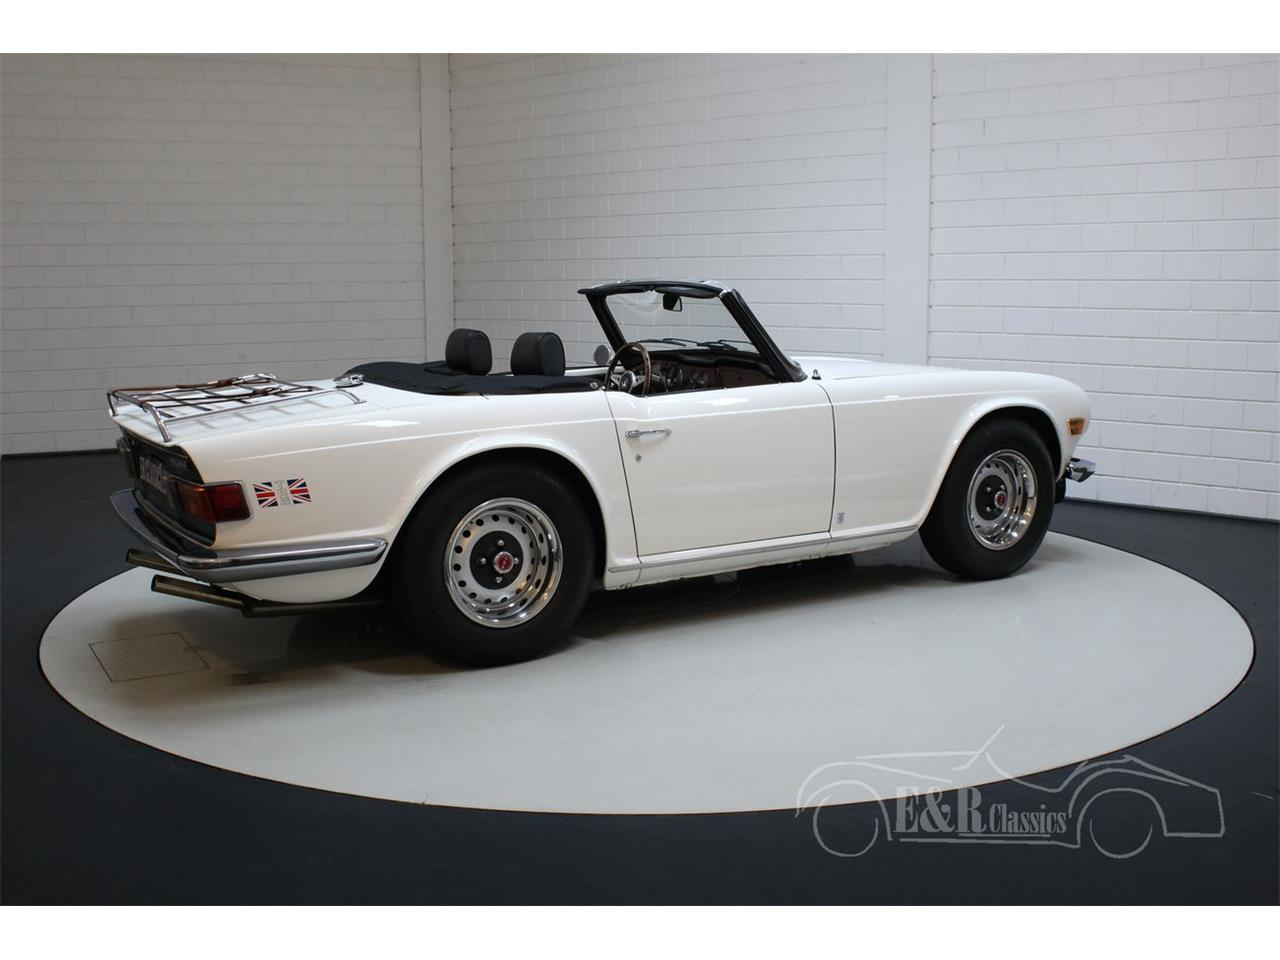 1973 Triumph TR6 (CC-1414100) for sale in Waalwijk, Noord-Brabant